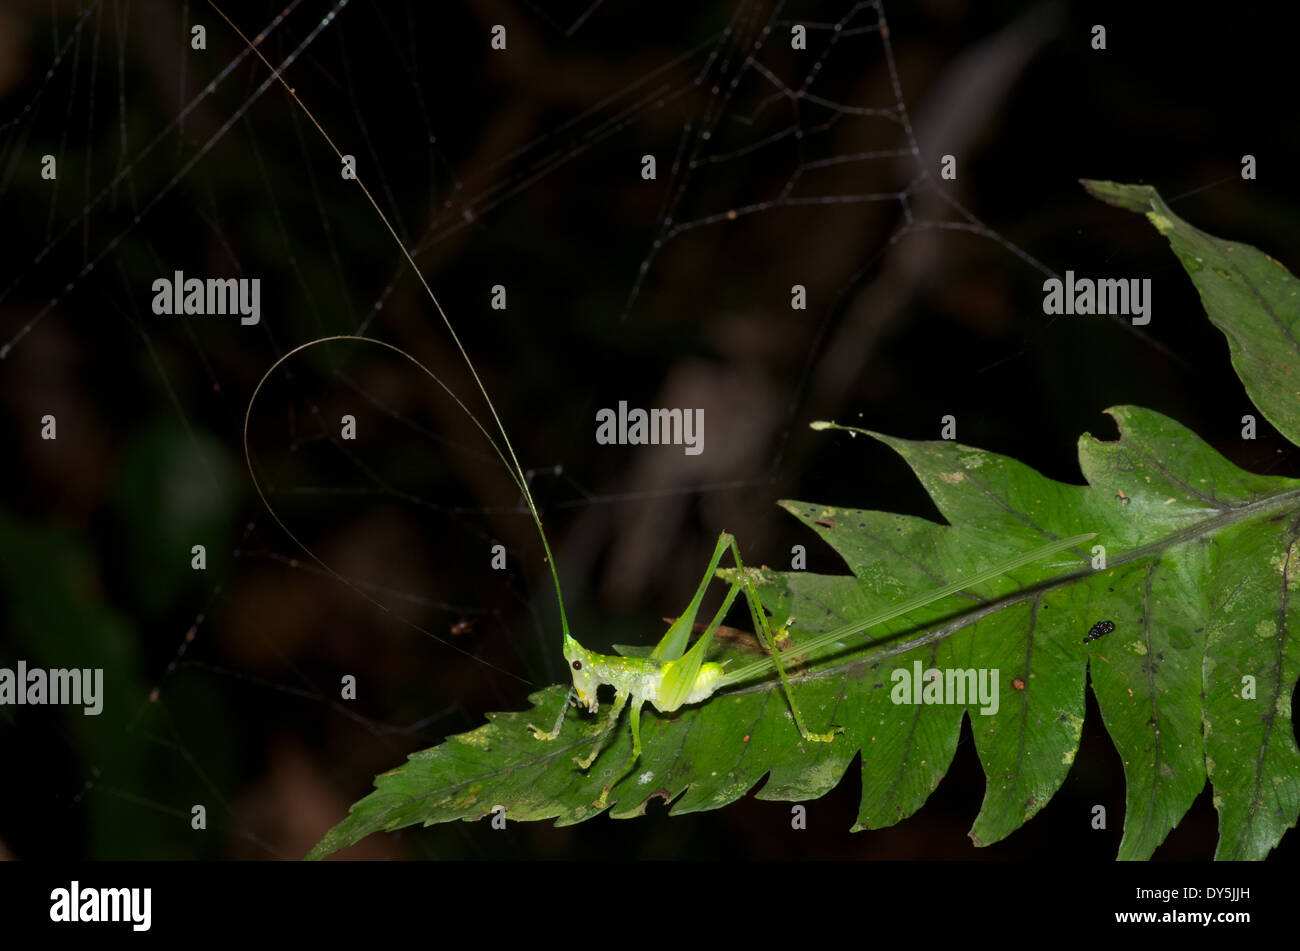 A nocturnal cone-headed katydid cleaning its antennae in the Amazon rainforest in Loreto, Peru. - Stock Image